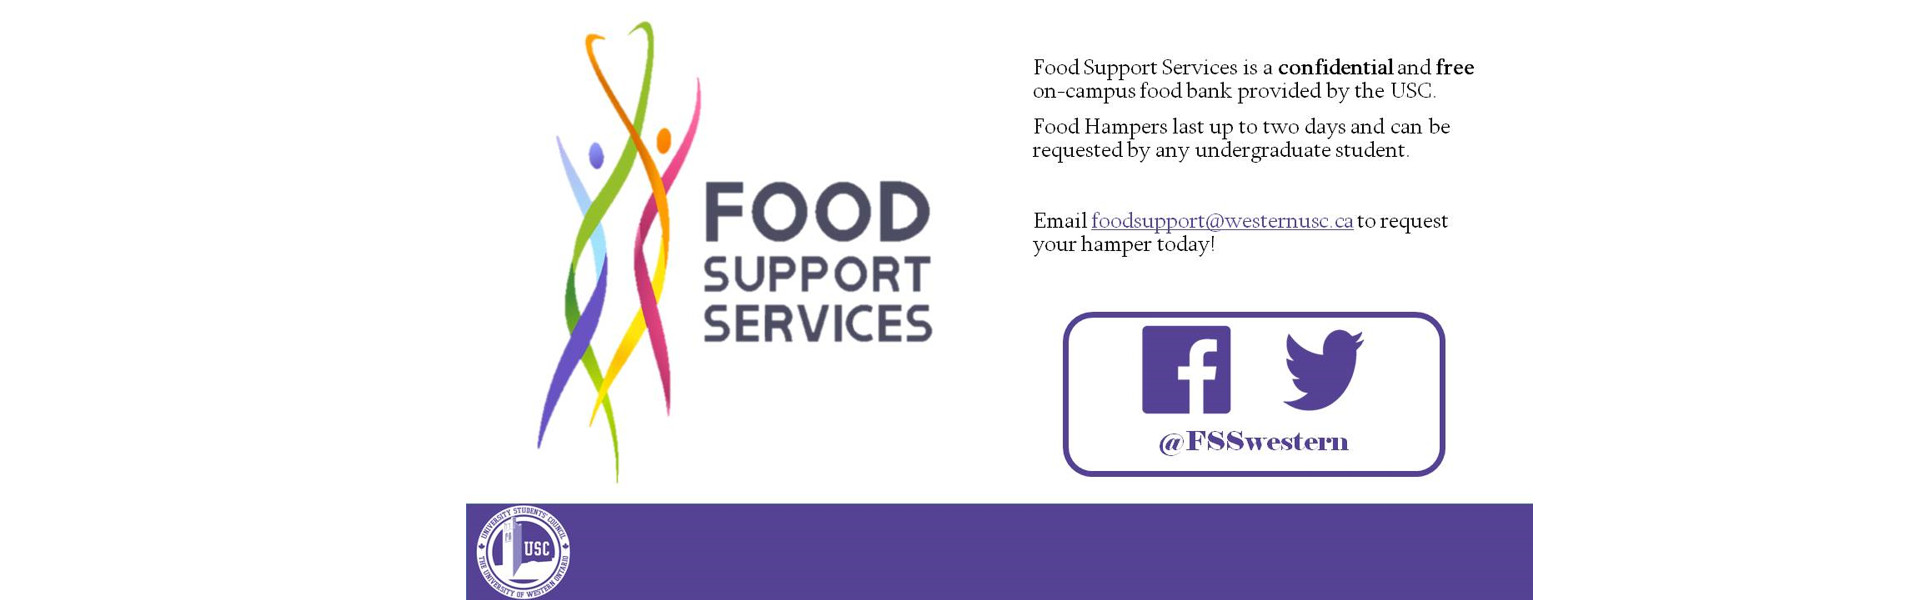 Food support is a confidential and free on-campus food bank provided by the USC. Food hampers last up to two days and can be requested by any undergraduate student. Email foodsupport@westernusc.ca to request your hamper today!